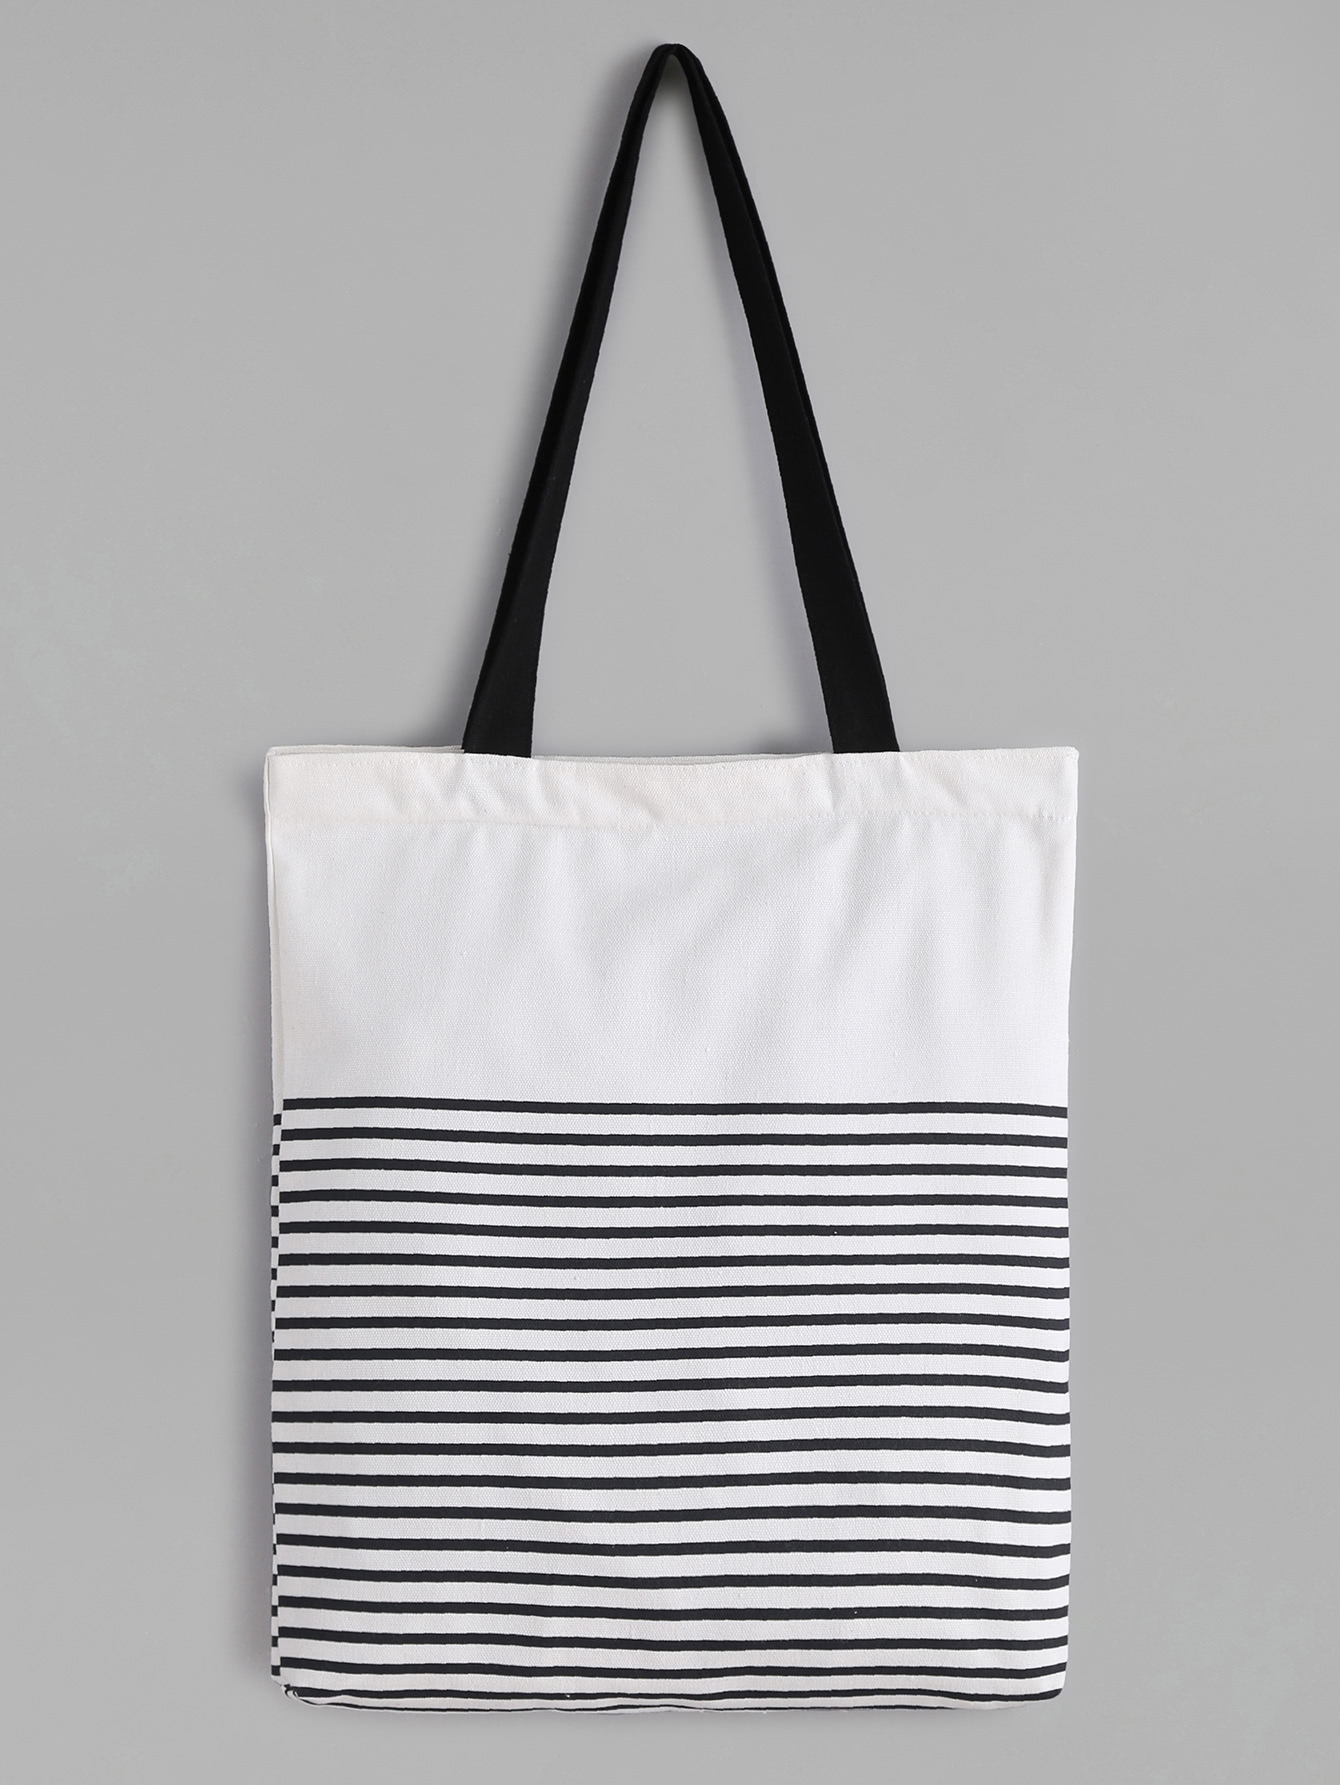 White Striped Canvas Tote Bag With Black Strap